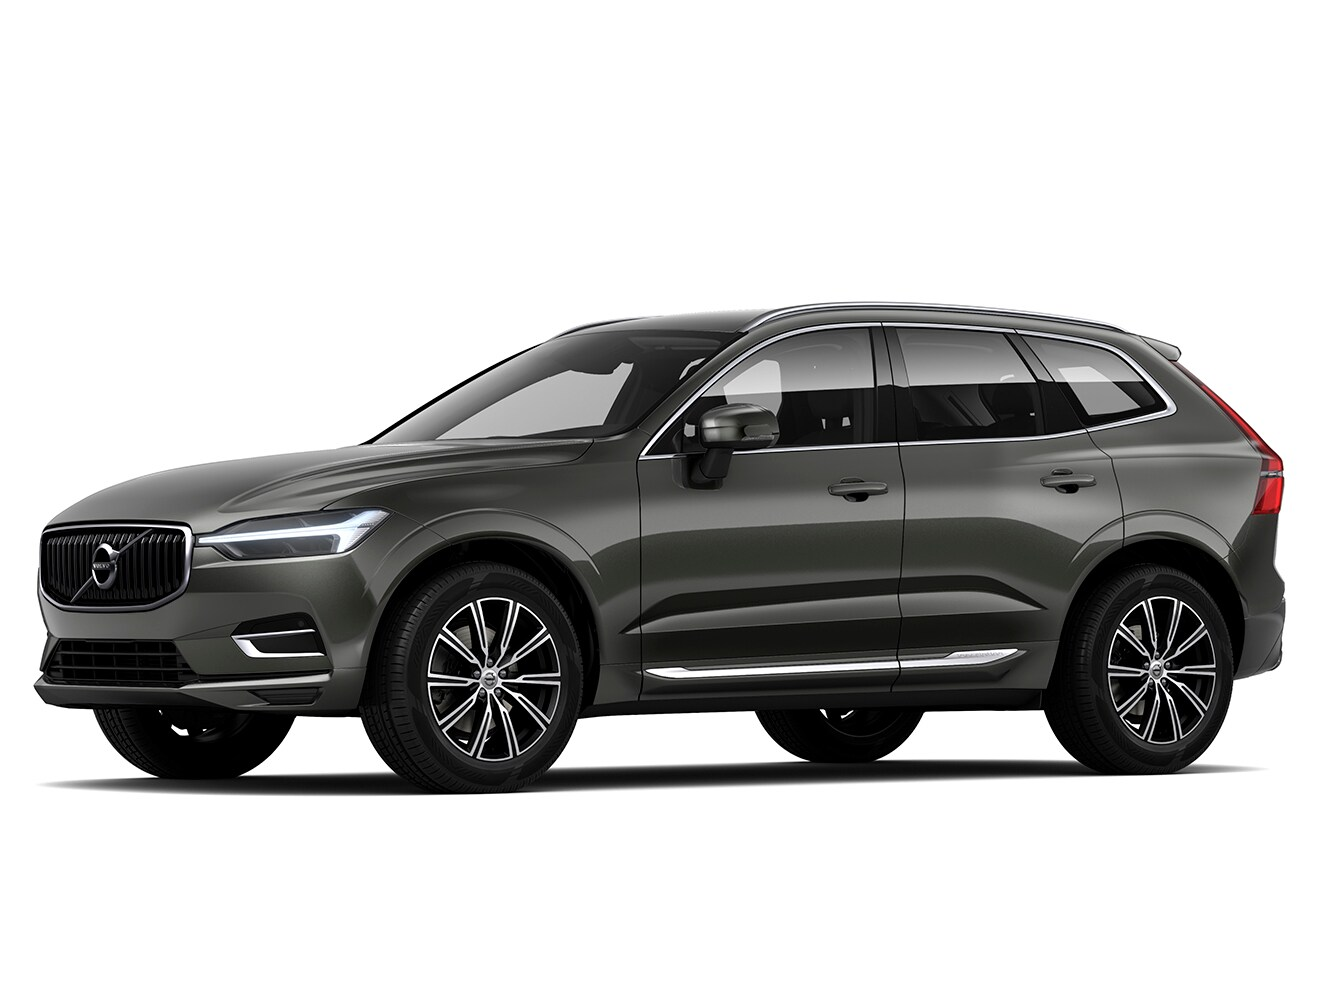 The new Volvo XC60 R-Design trim